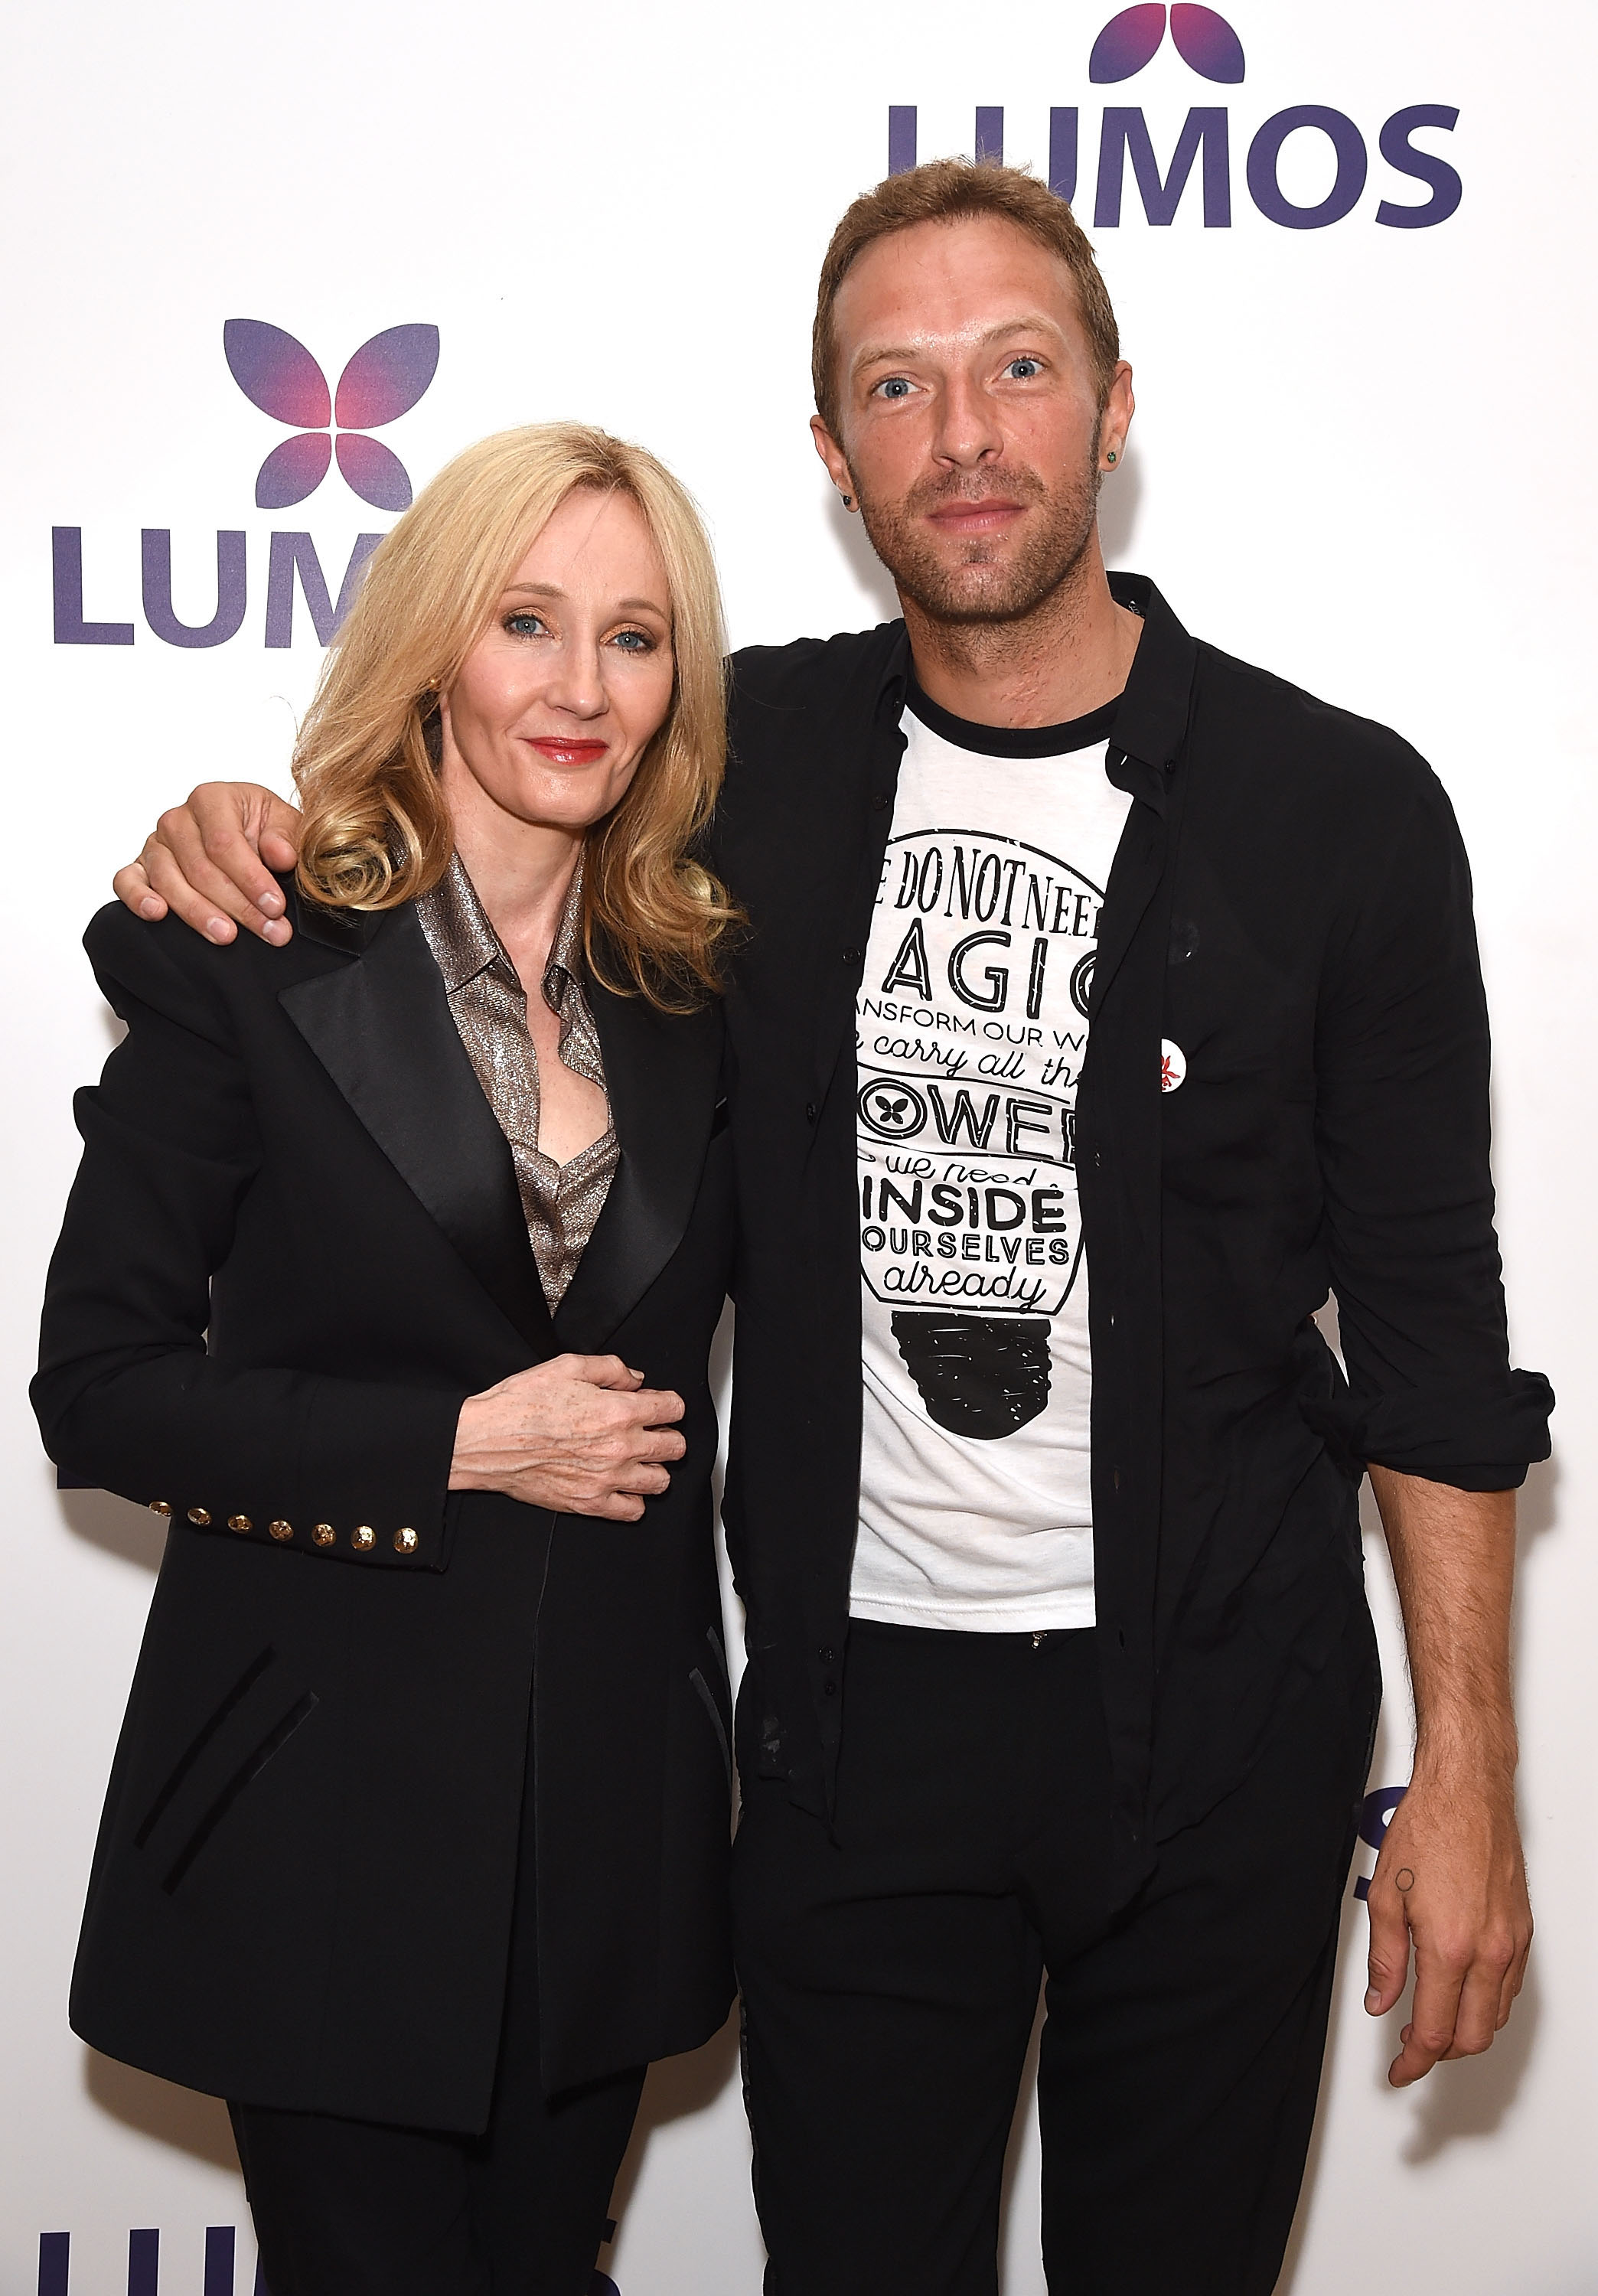 J.K. Rowling (autora de Harry Potter) e Chris Martin. Photo by Dave Benett/Getty Images for Lumos)